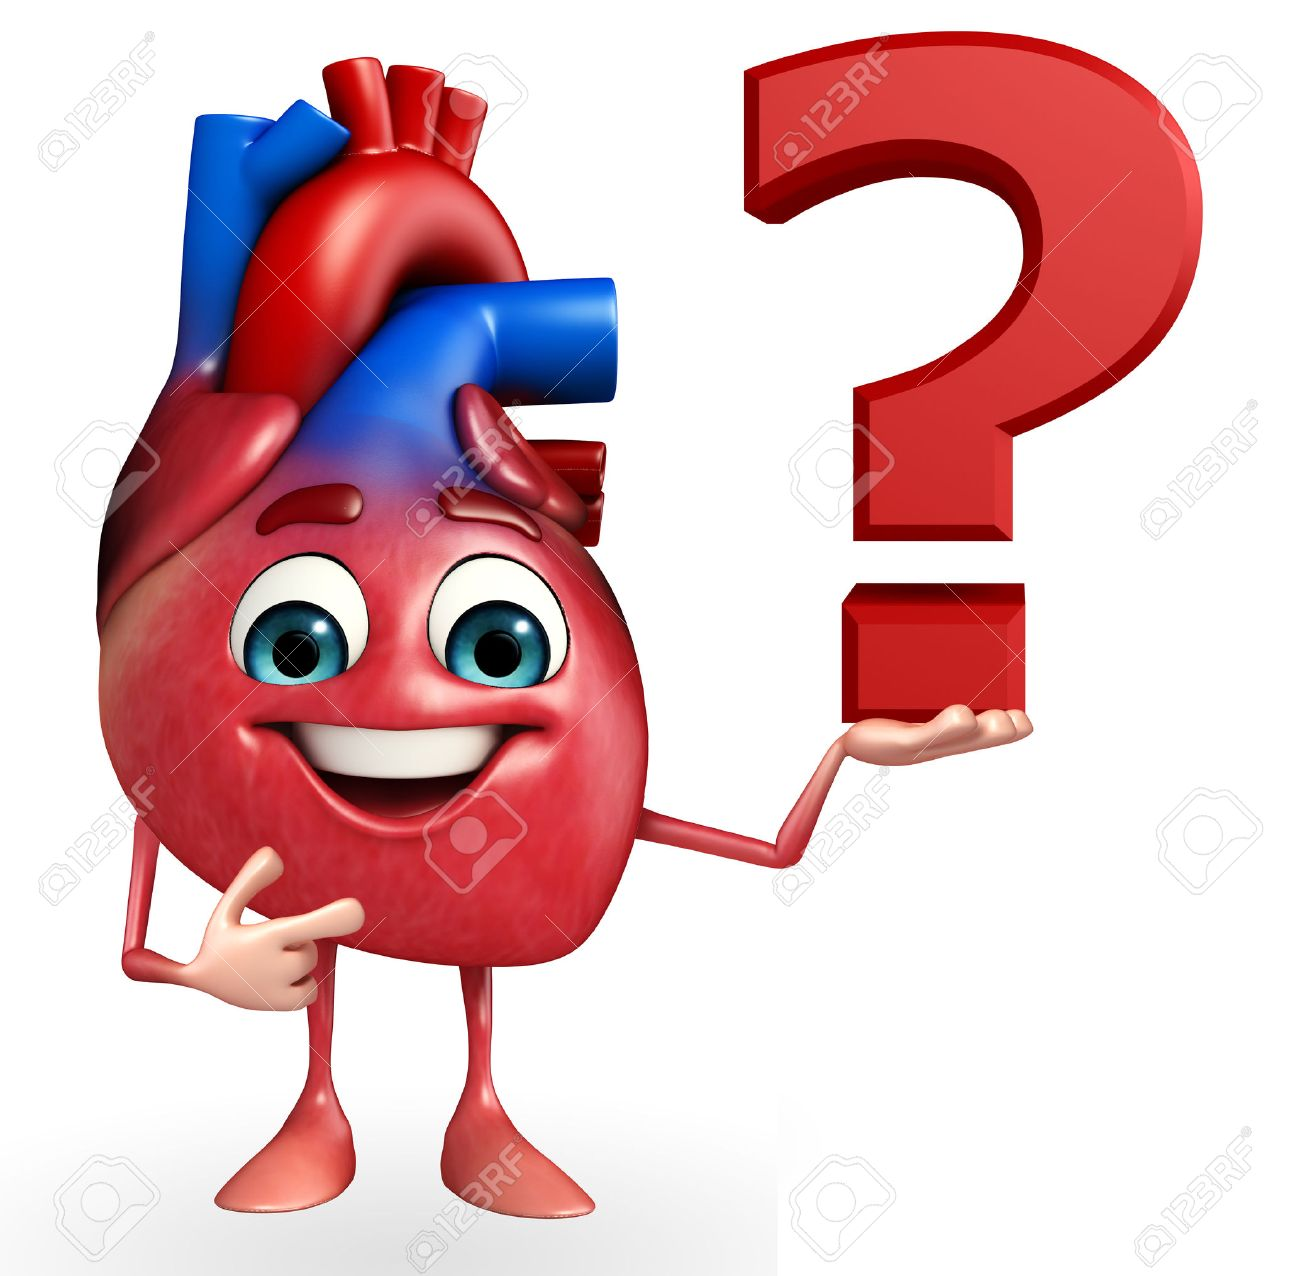 Cartoon Character Of Heart With Question Mark Stock Photo, Picture ...